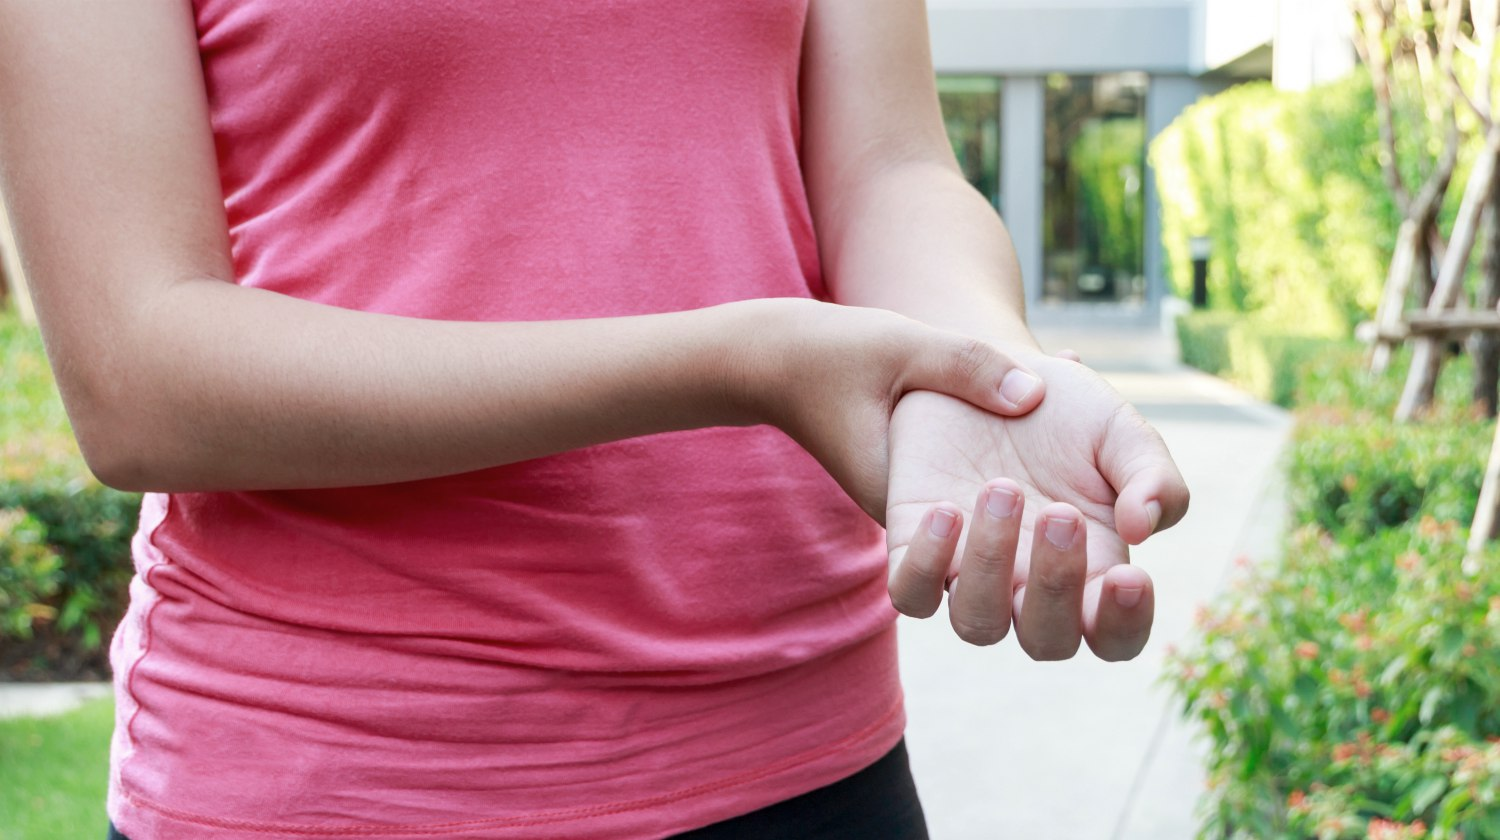 Featured | woman having hand pain | Mysterious Wrist Pain Symptoms, Causes, and Treatment | pain in the wrist